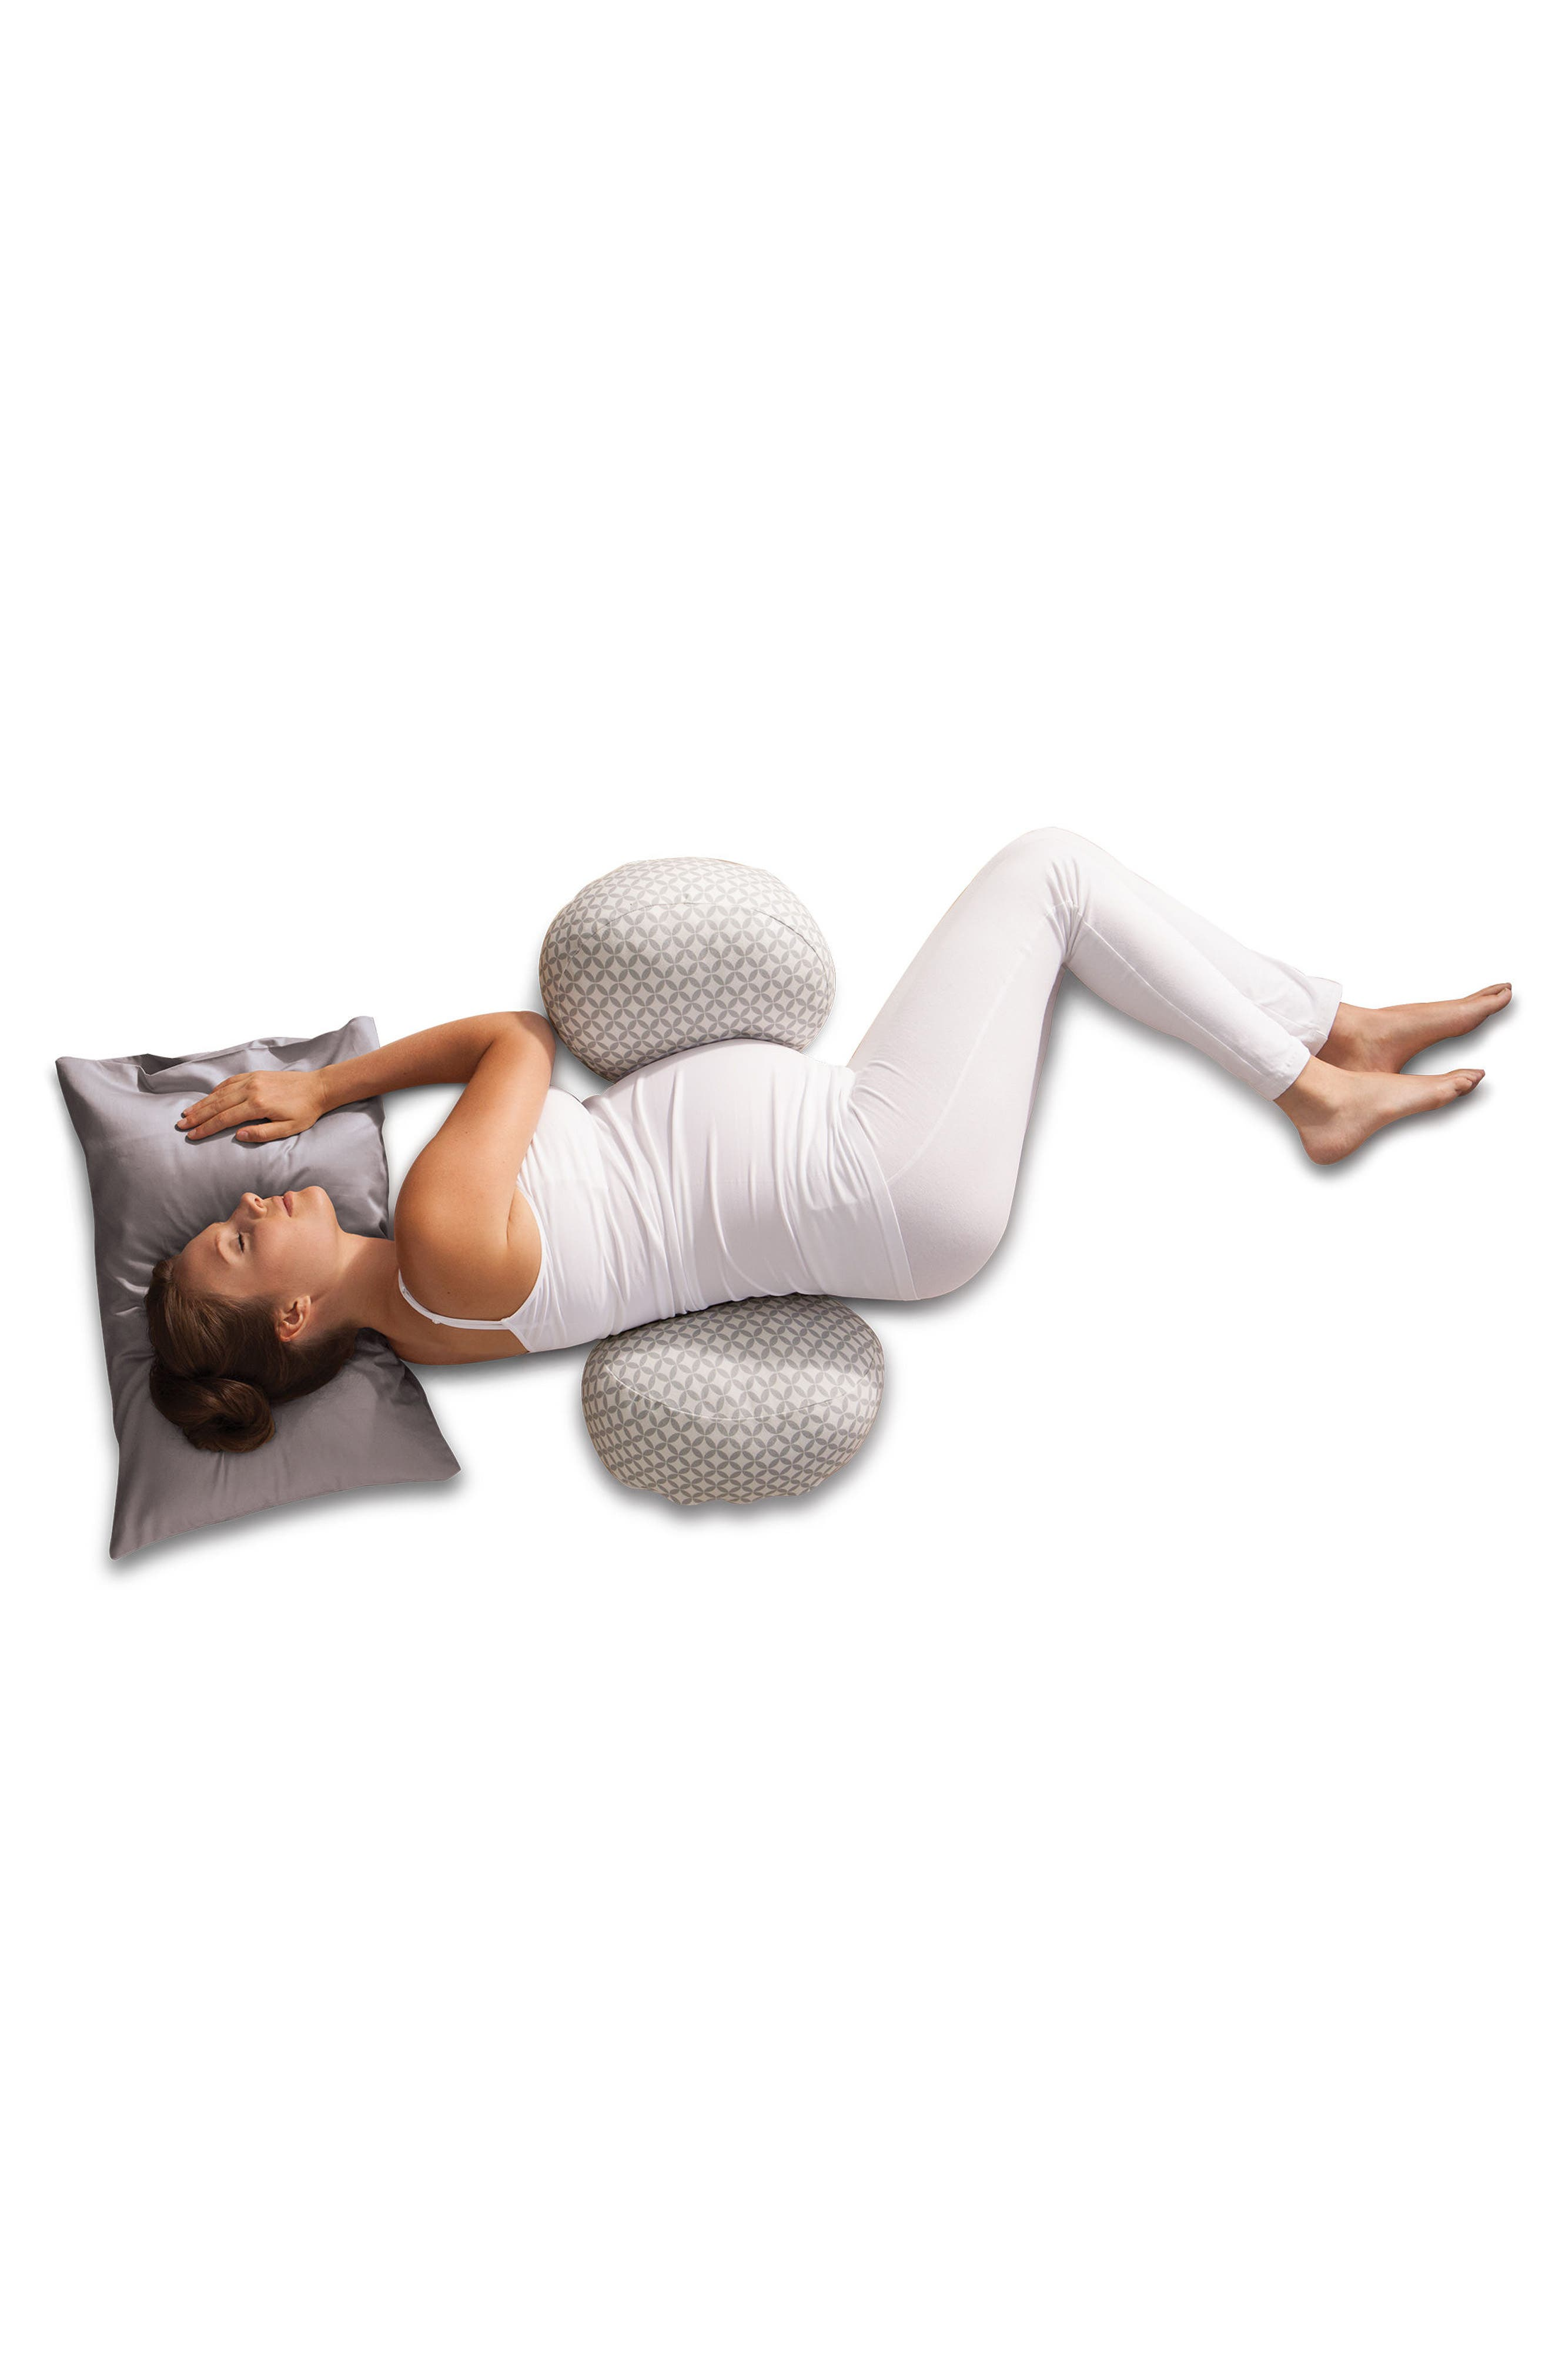 Bump & Back Support Pillow,                             Alternate thumbnail 2, color,                             White/ Grey Geo